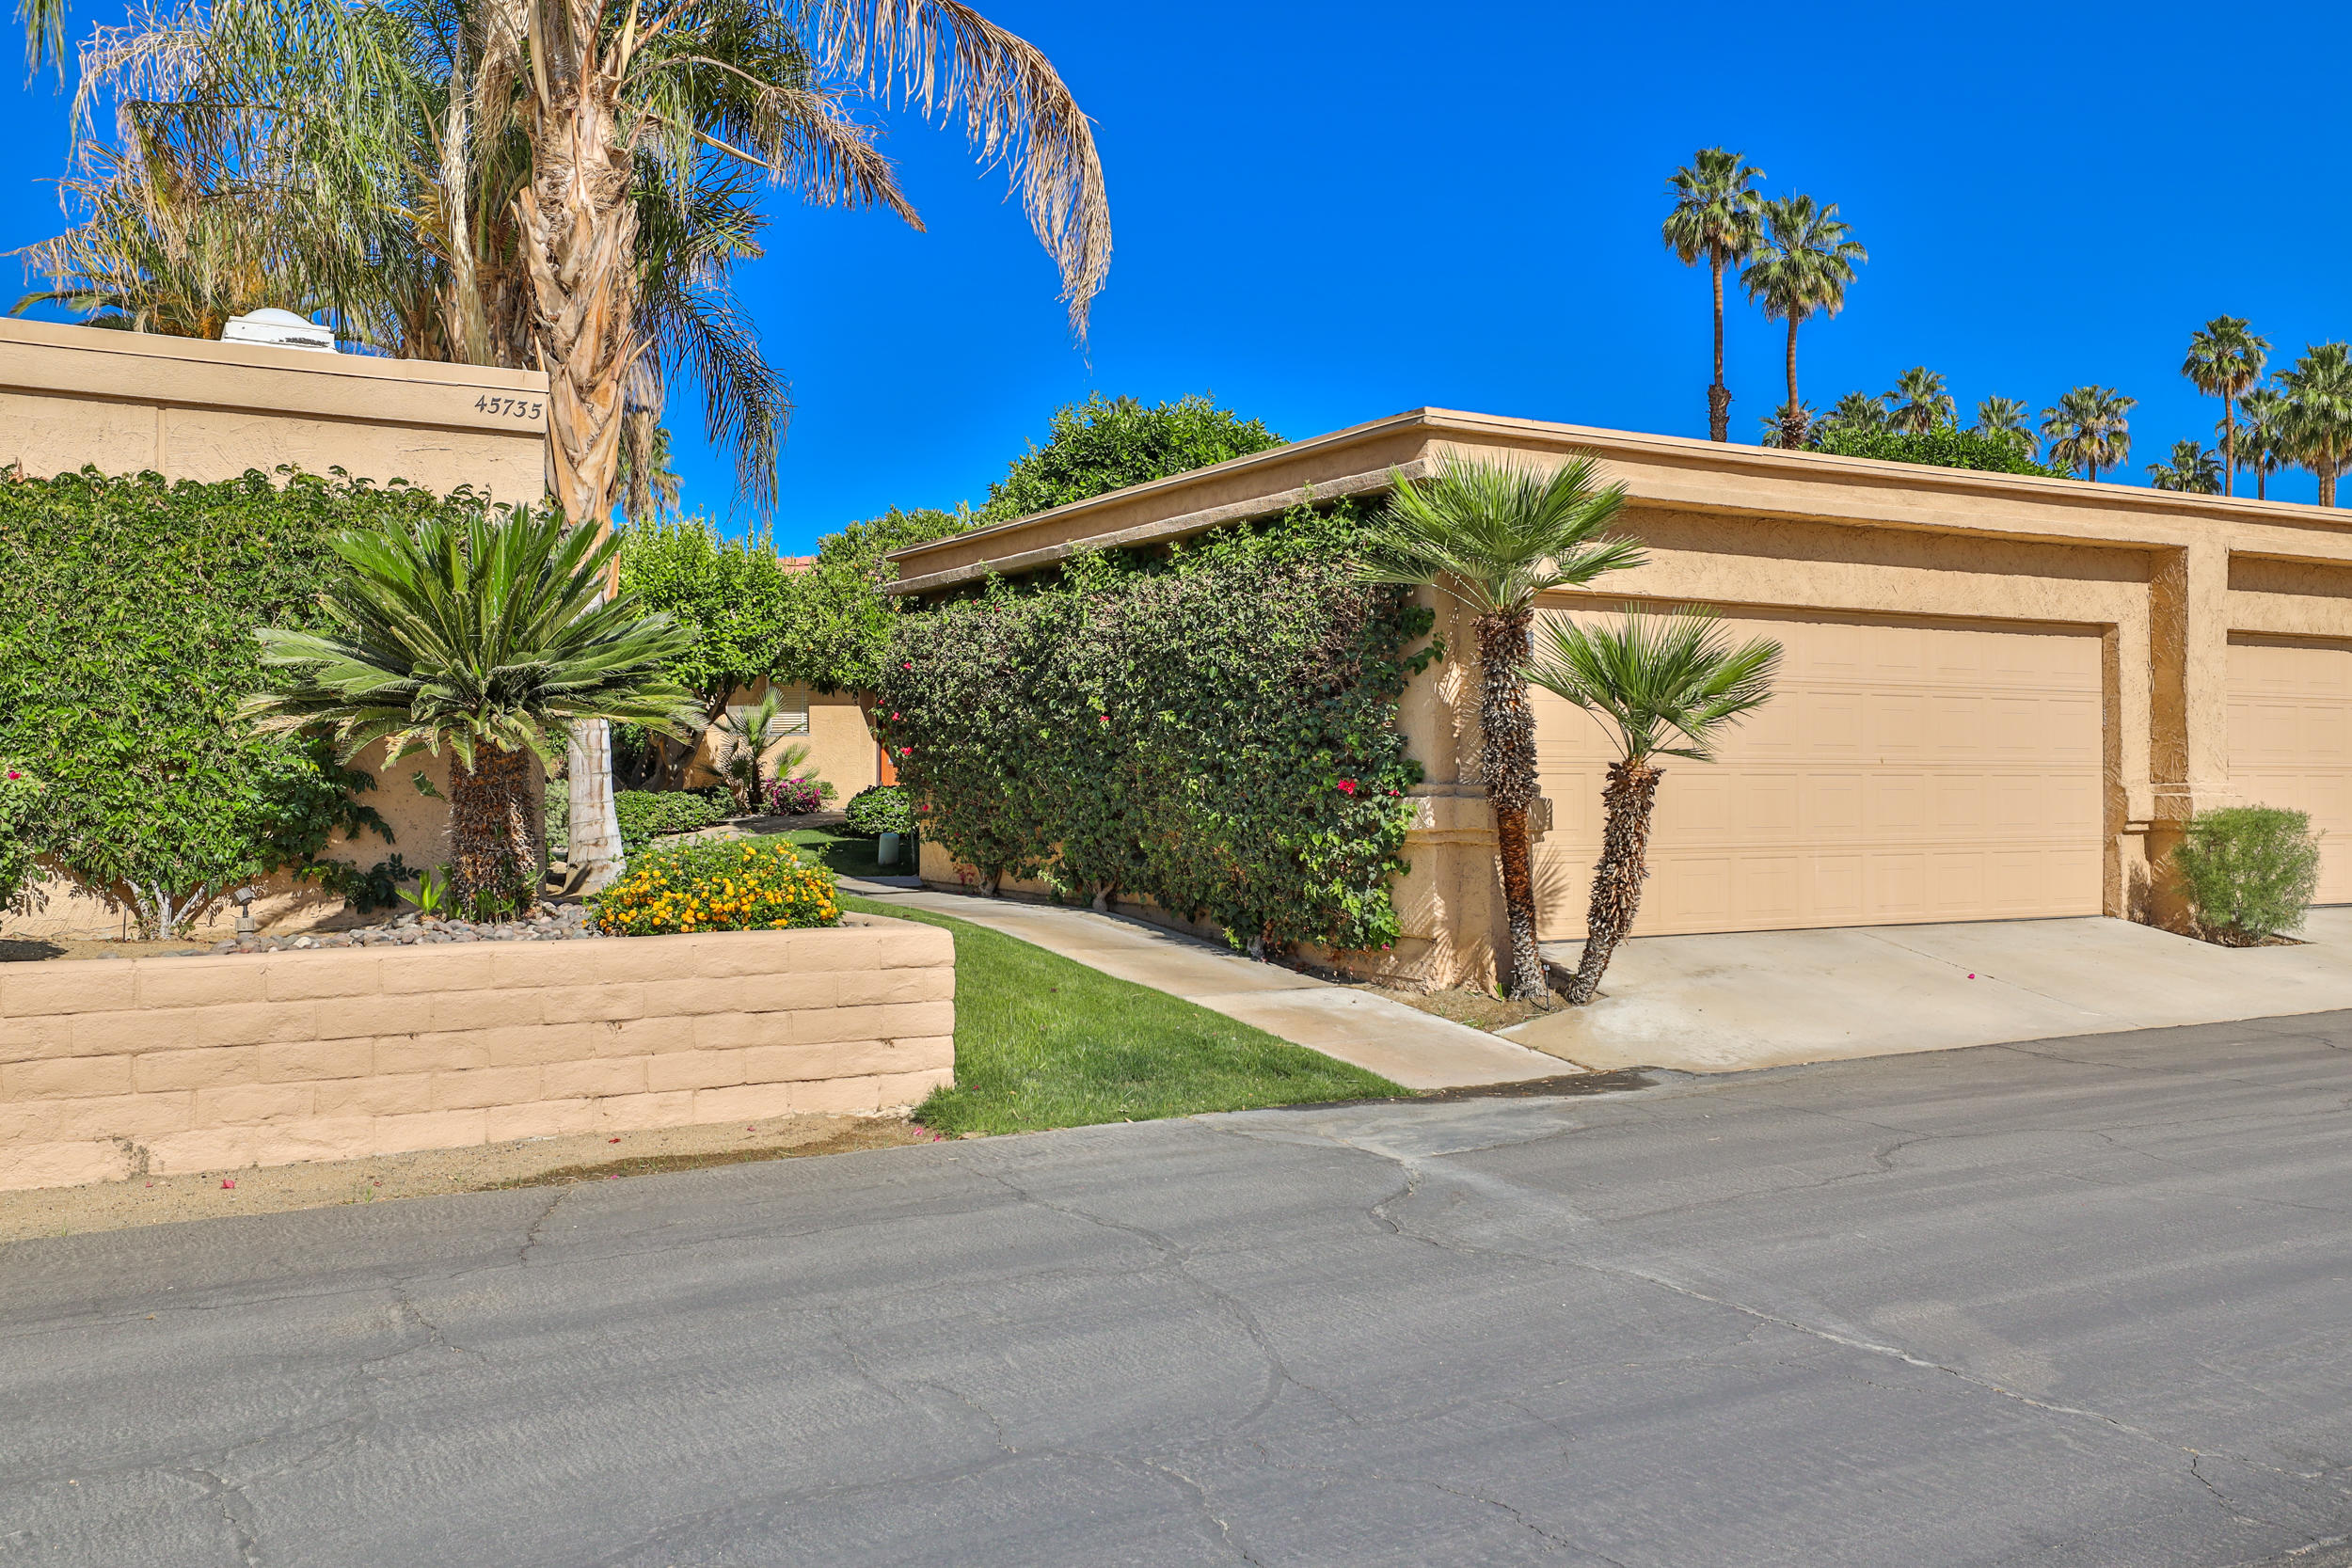 Much sought after Sandpiper Condo behind the gates of the Indian Wells Country Club with magnificent Southwest Mountain views!  Savor your views of mountains, manicured gardens and inviting pool from the living room, dining room, updated open kitchen with granite counter bar.  The 2 spacious bedrooms are en-suite with granite counters, large showers, walk-in closets and both with access to the private enclosed patio.  Separate Laundry room accommodates full size washer/dryer with ample storage.  Two car detached garage is only steps from your unit. Property Owners of Indian Wells can receive discounted rates at IW Golf Resort and other IW restaurants.